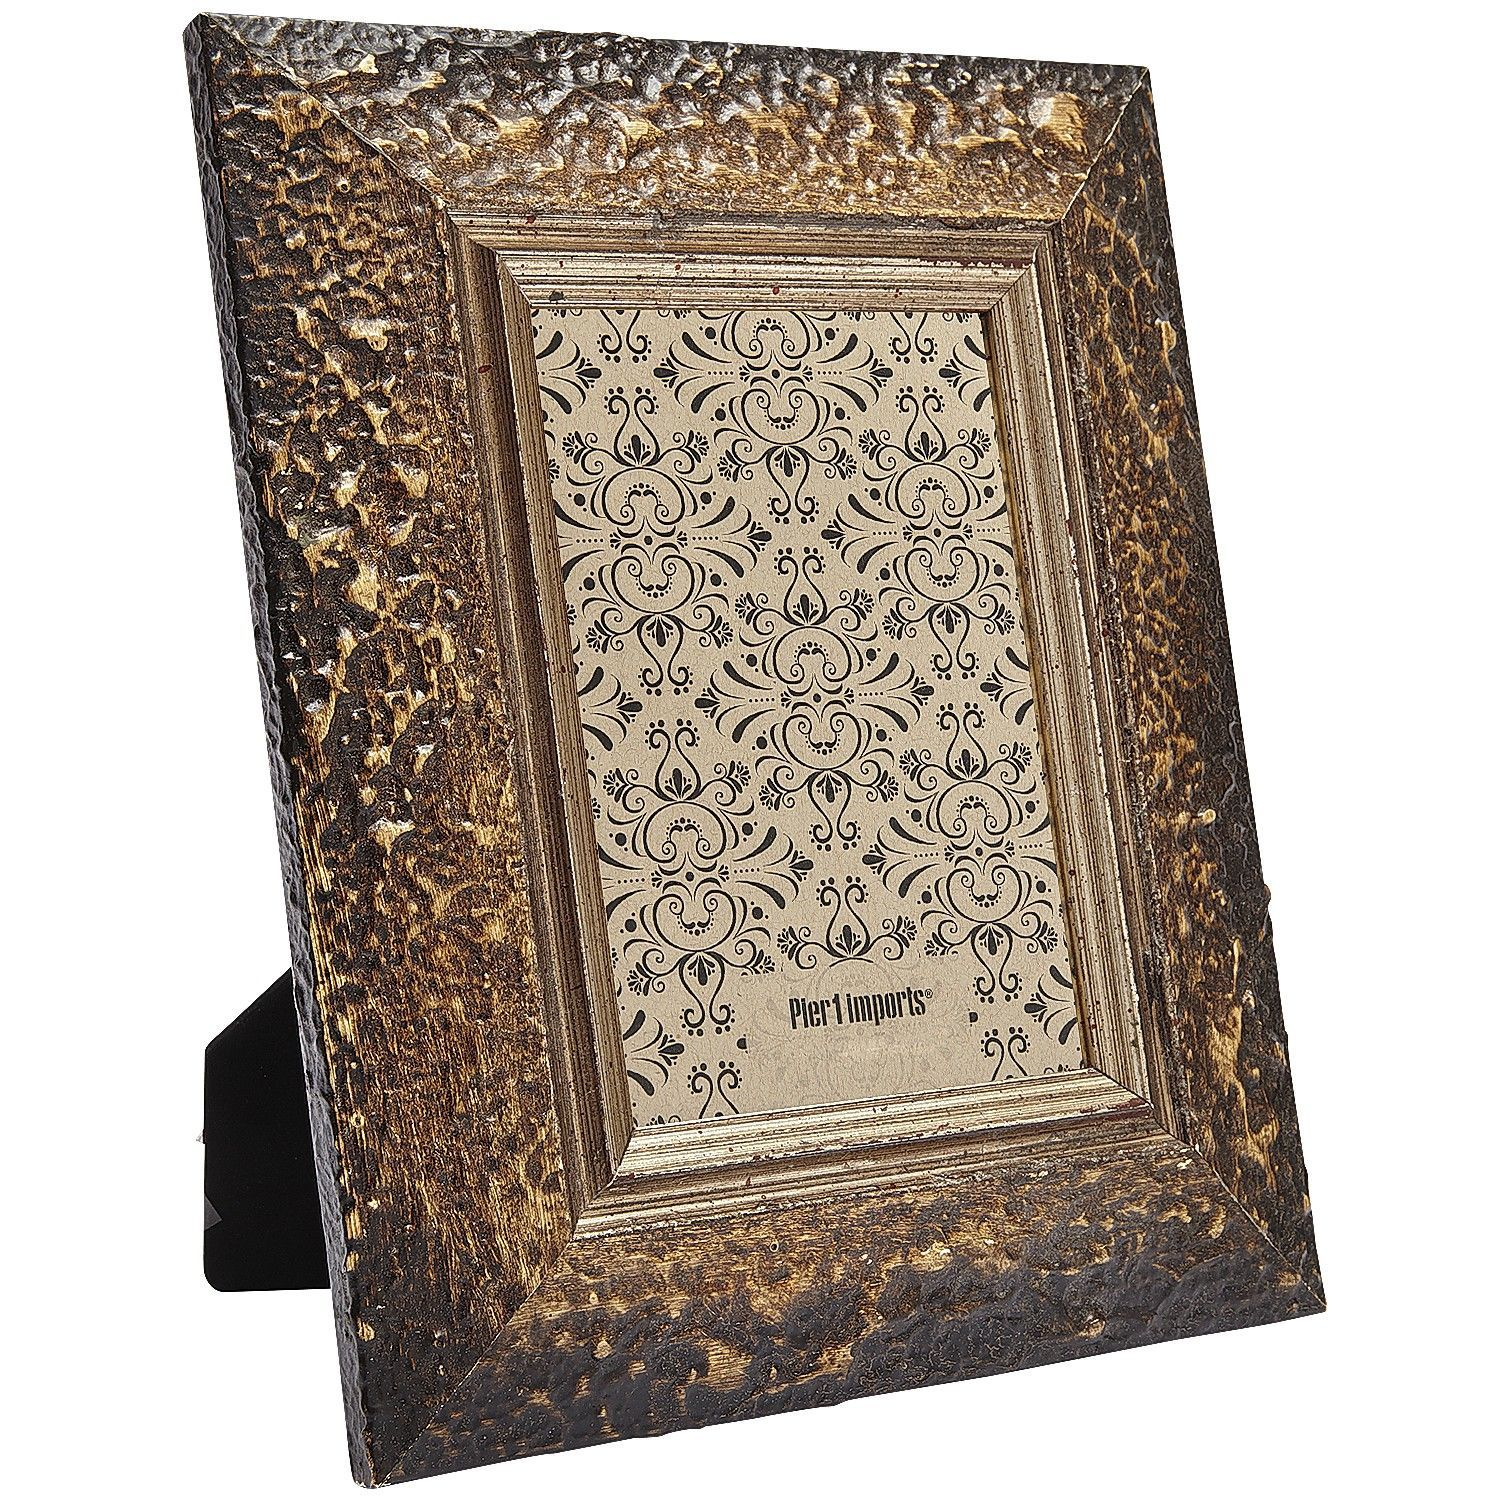 Donahue Frame - 4x6 | Pier 1 Imports | Picture Frames | Pinterest